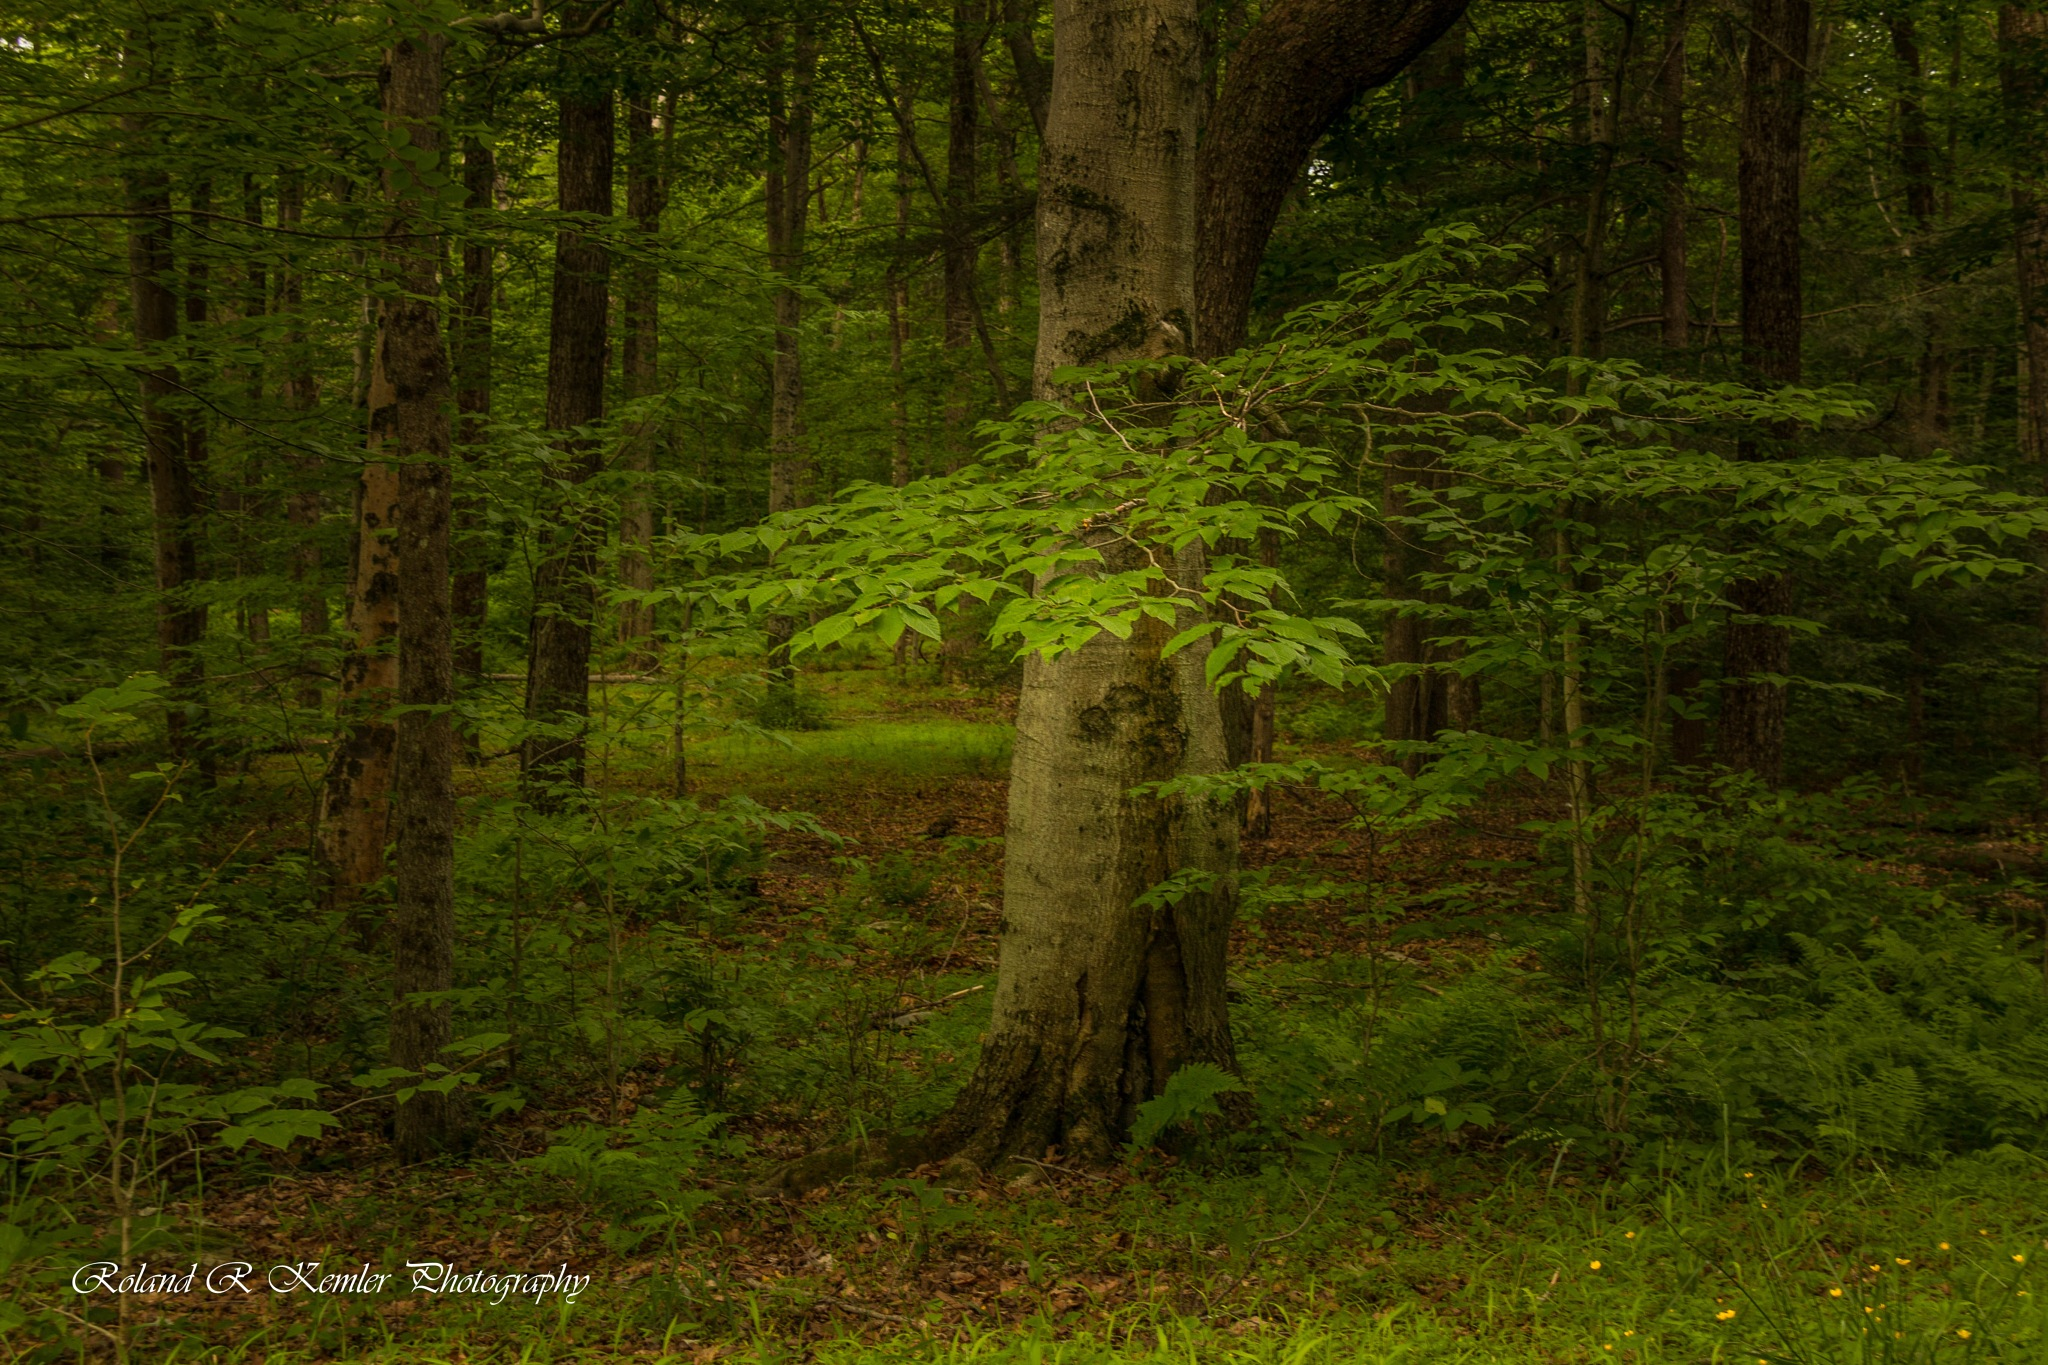 The Spiritial Forest by Roland R Kemler